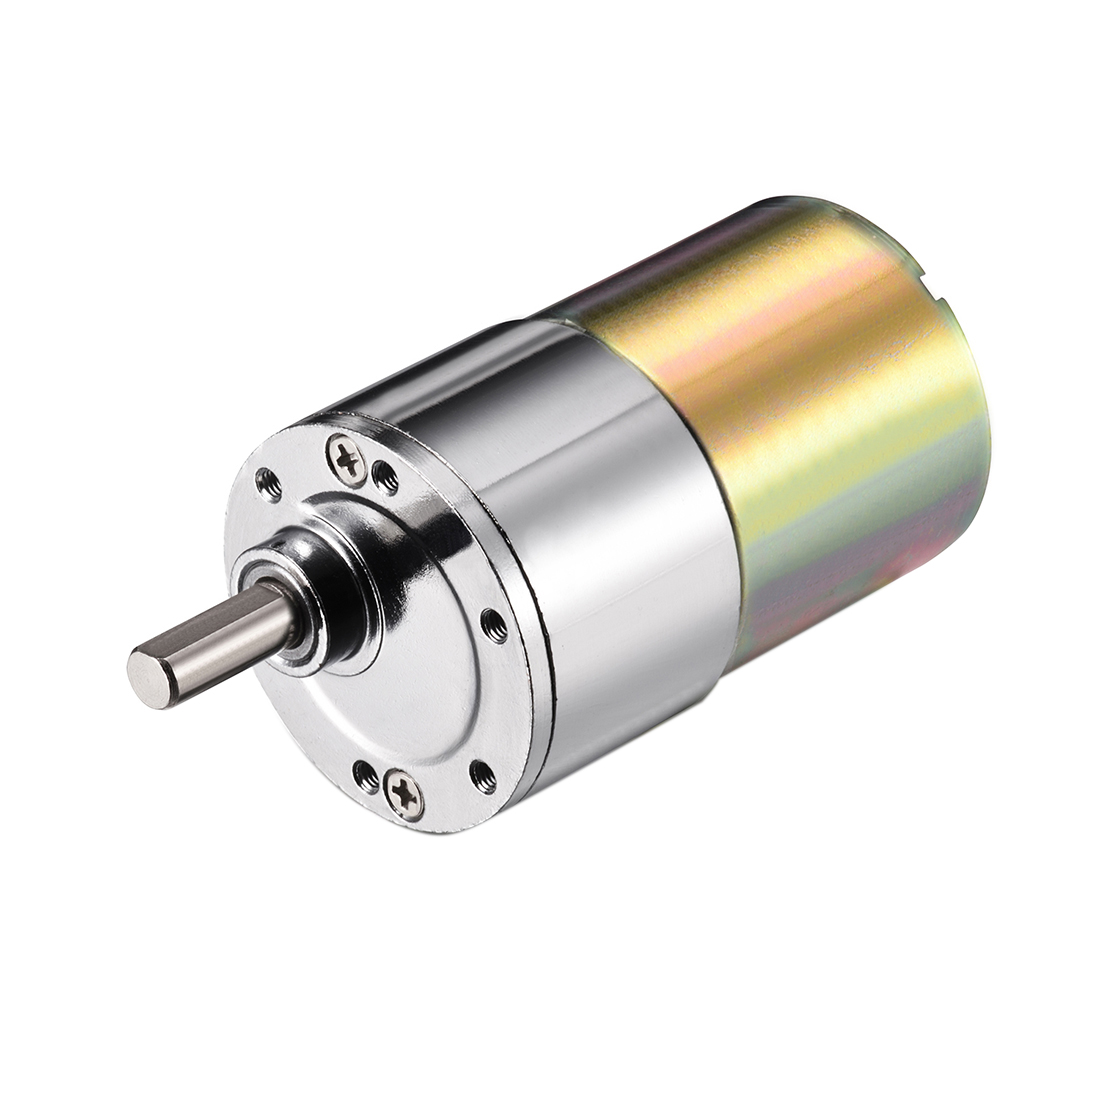 DC 12V 5RPM Micro Gear Box Motor Speed Reduction Electric Gearbox Eccentric Output Shaft